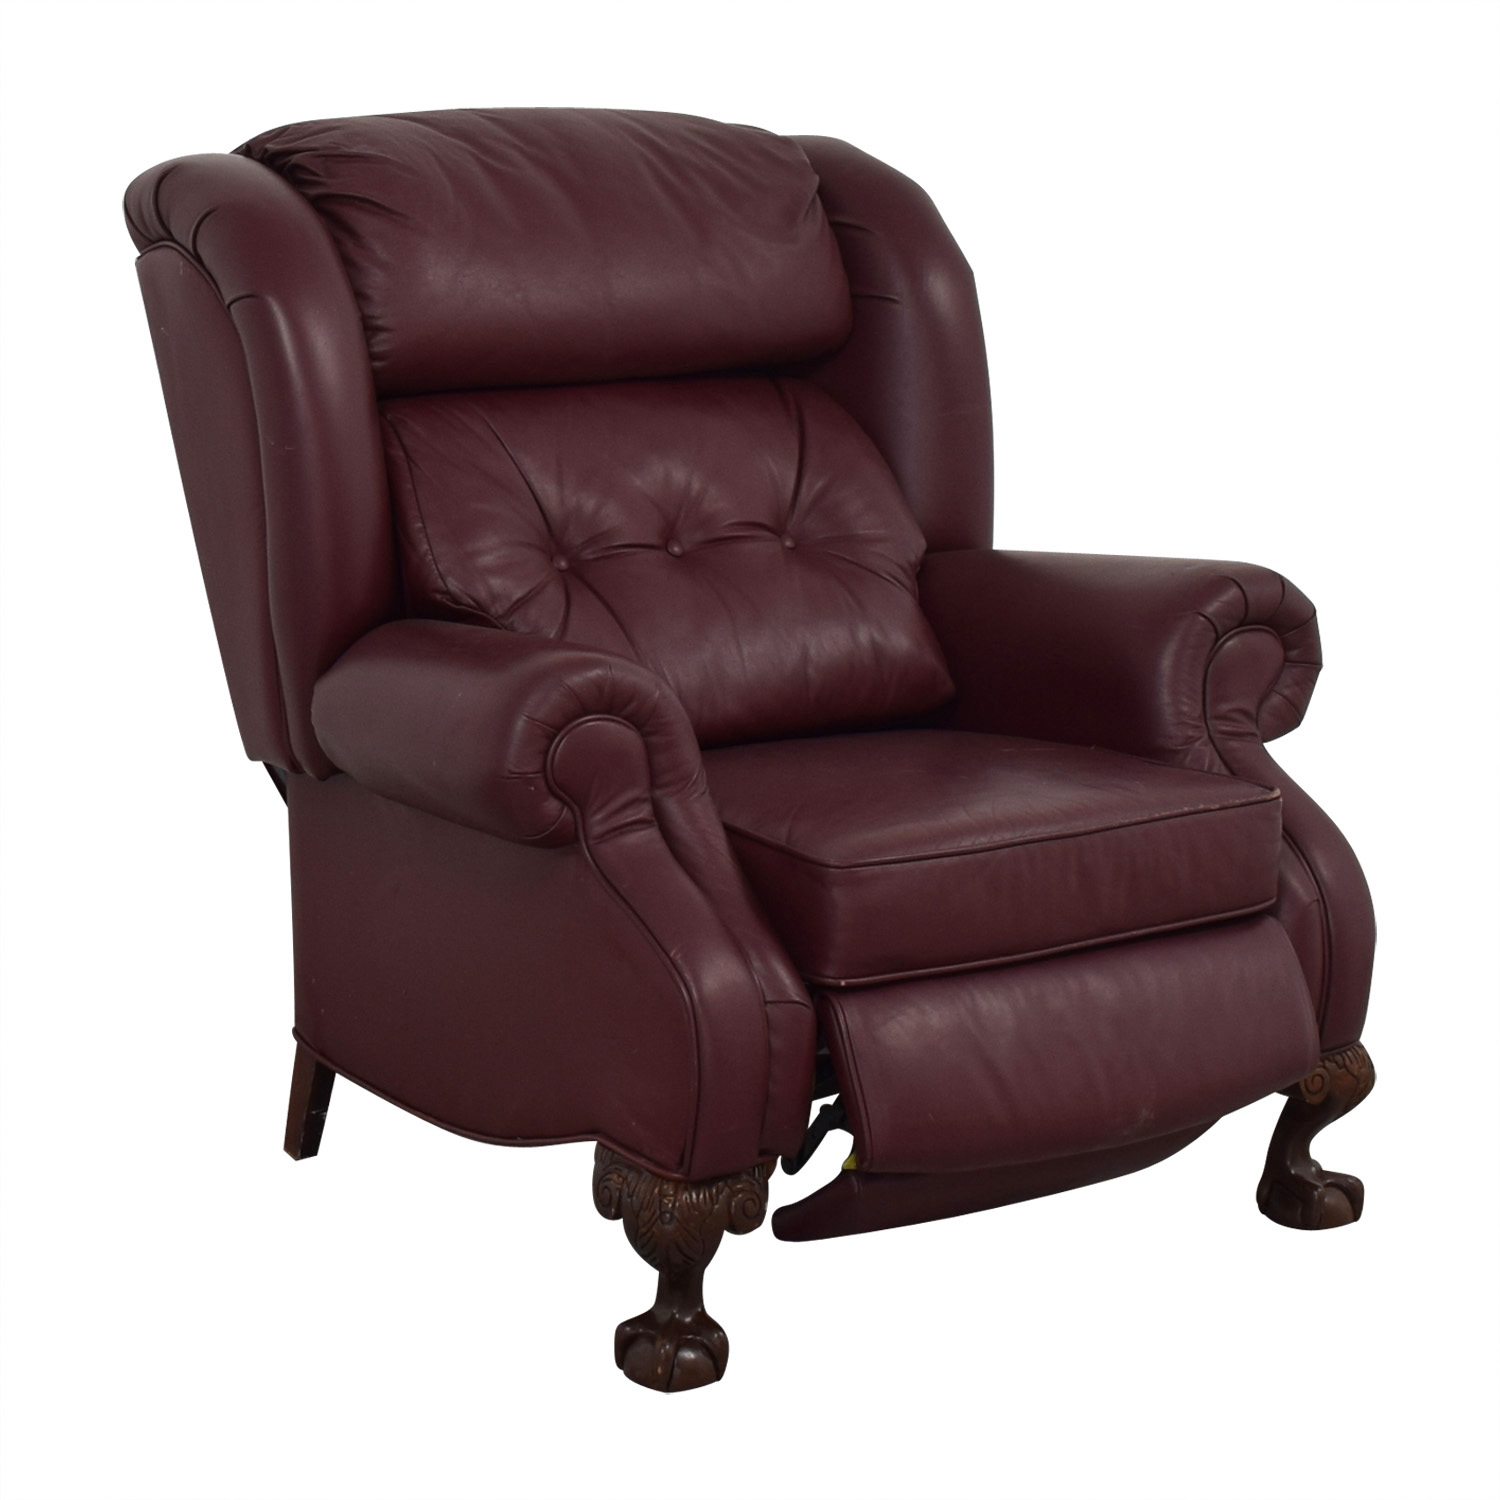 PeopLoungers PeopLoungers Burgundy Recliner second hand